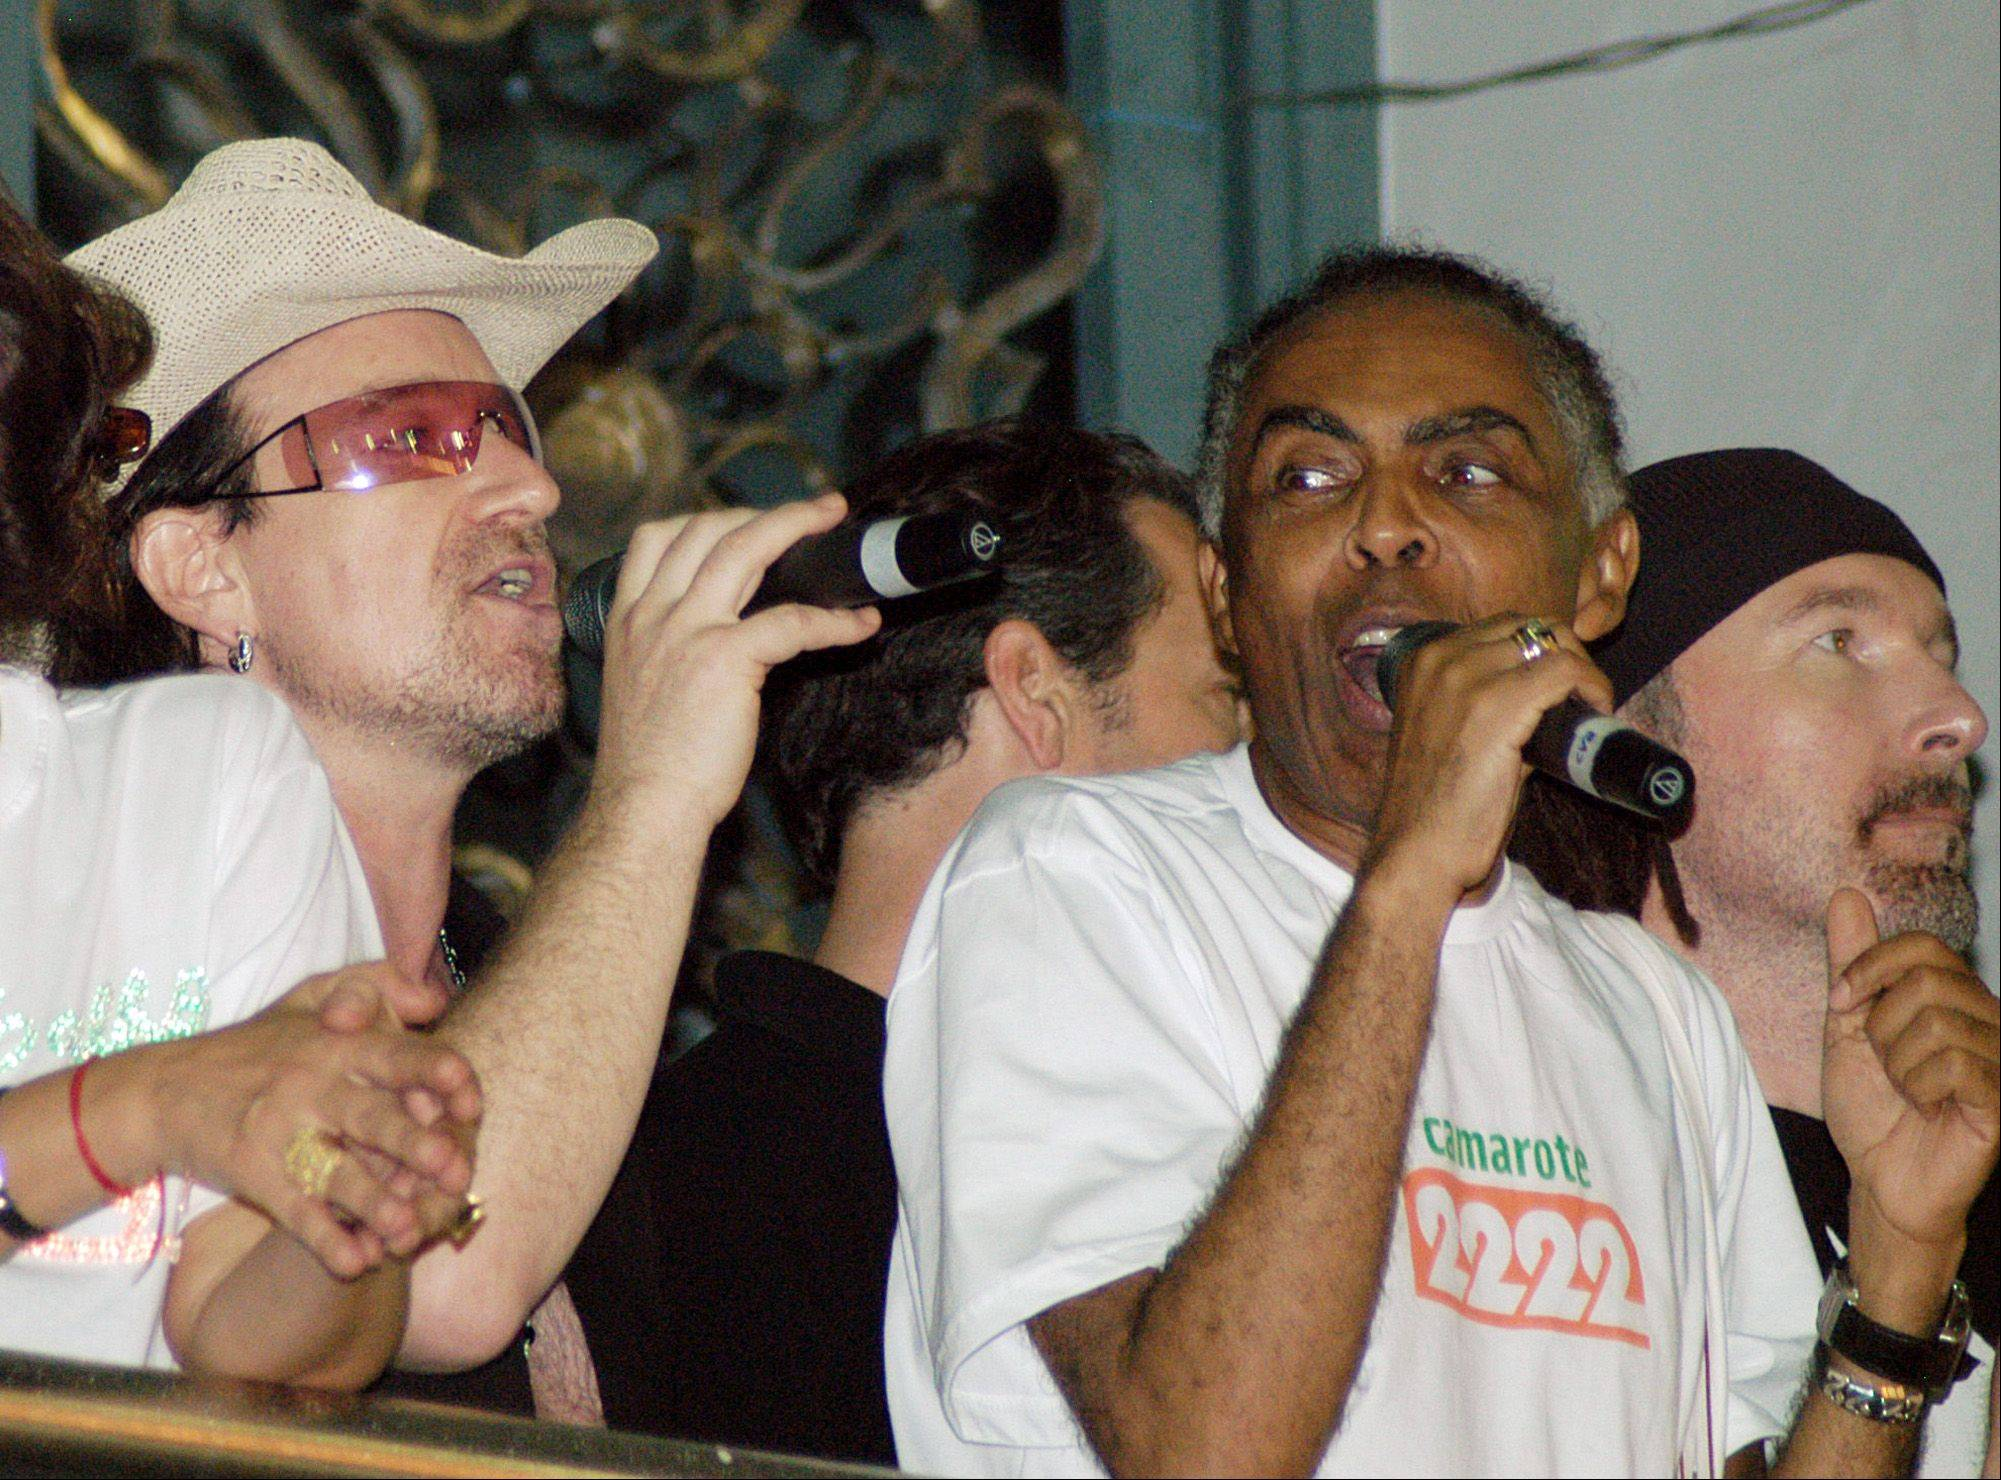 U2's Bono, left, performs with Brazilian Culture Minister and pop star Gilberto Gil, right, on Thursday, Feb. 23, 2006. The singer is attending Salvador, Brazil's Carnival as a guest of the minister. At far right is U2's The Edge.